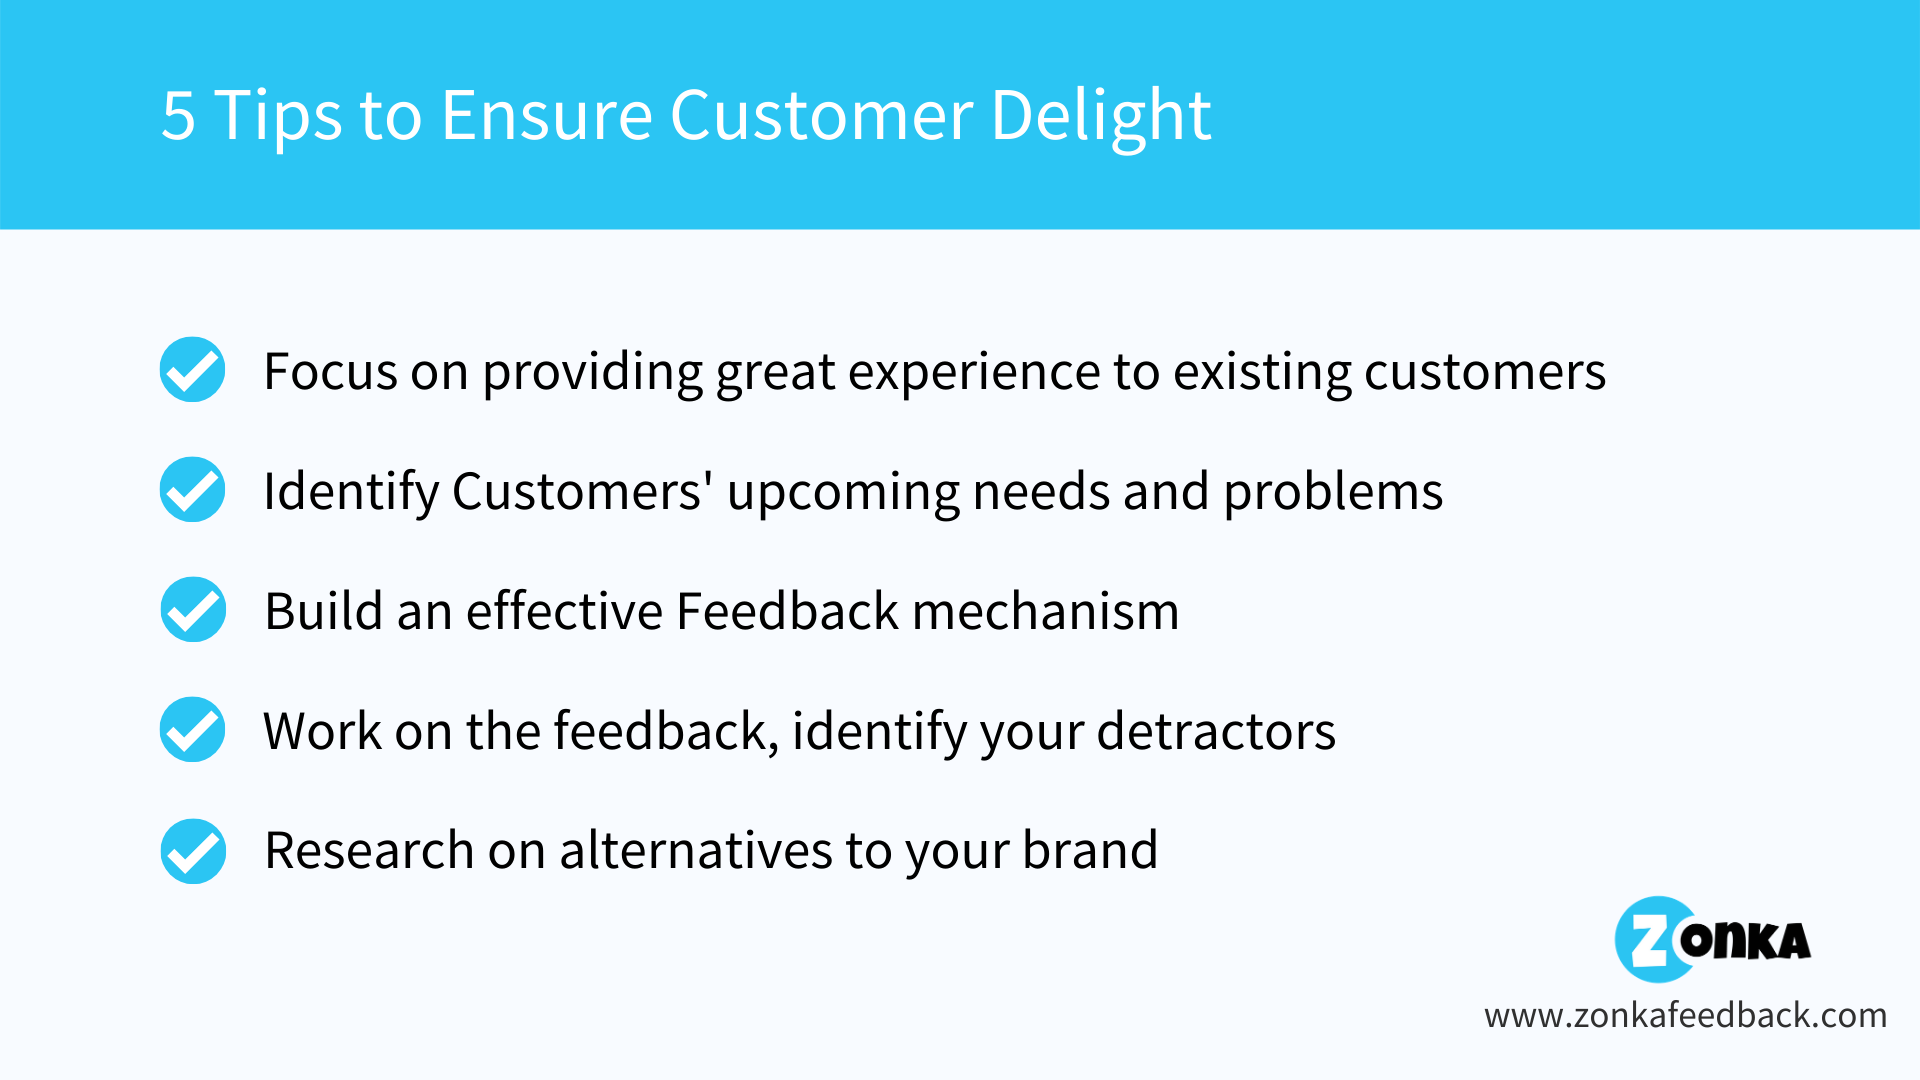 5 Tips to Ensure Customer Delight